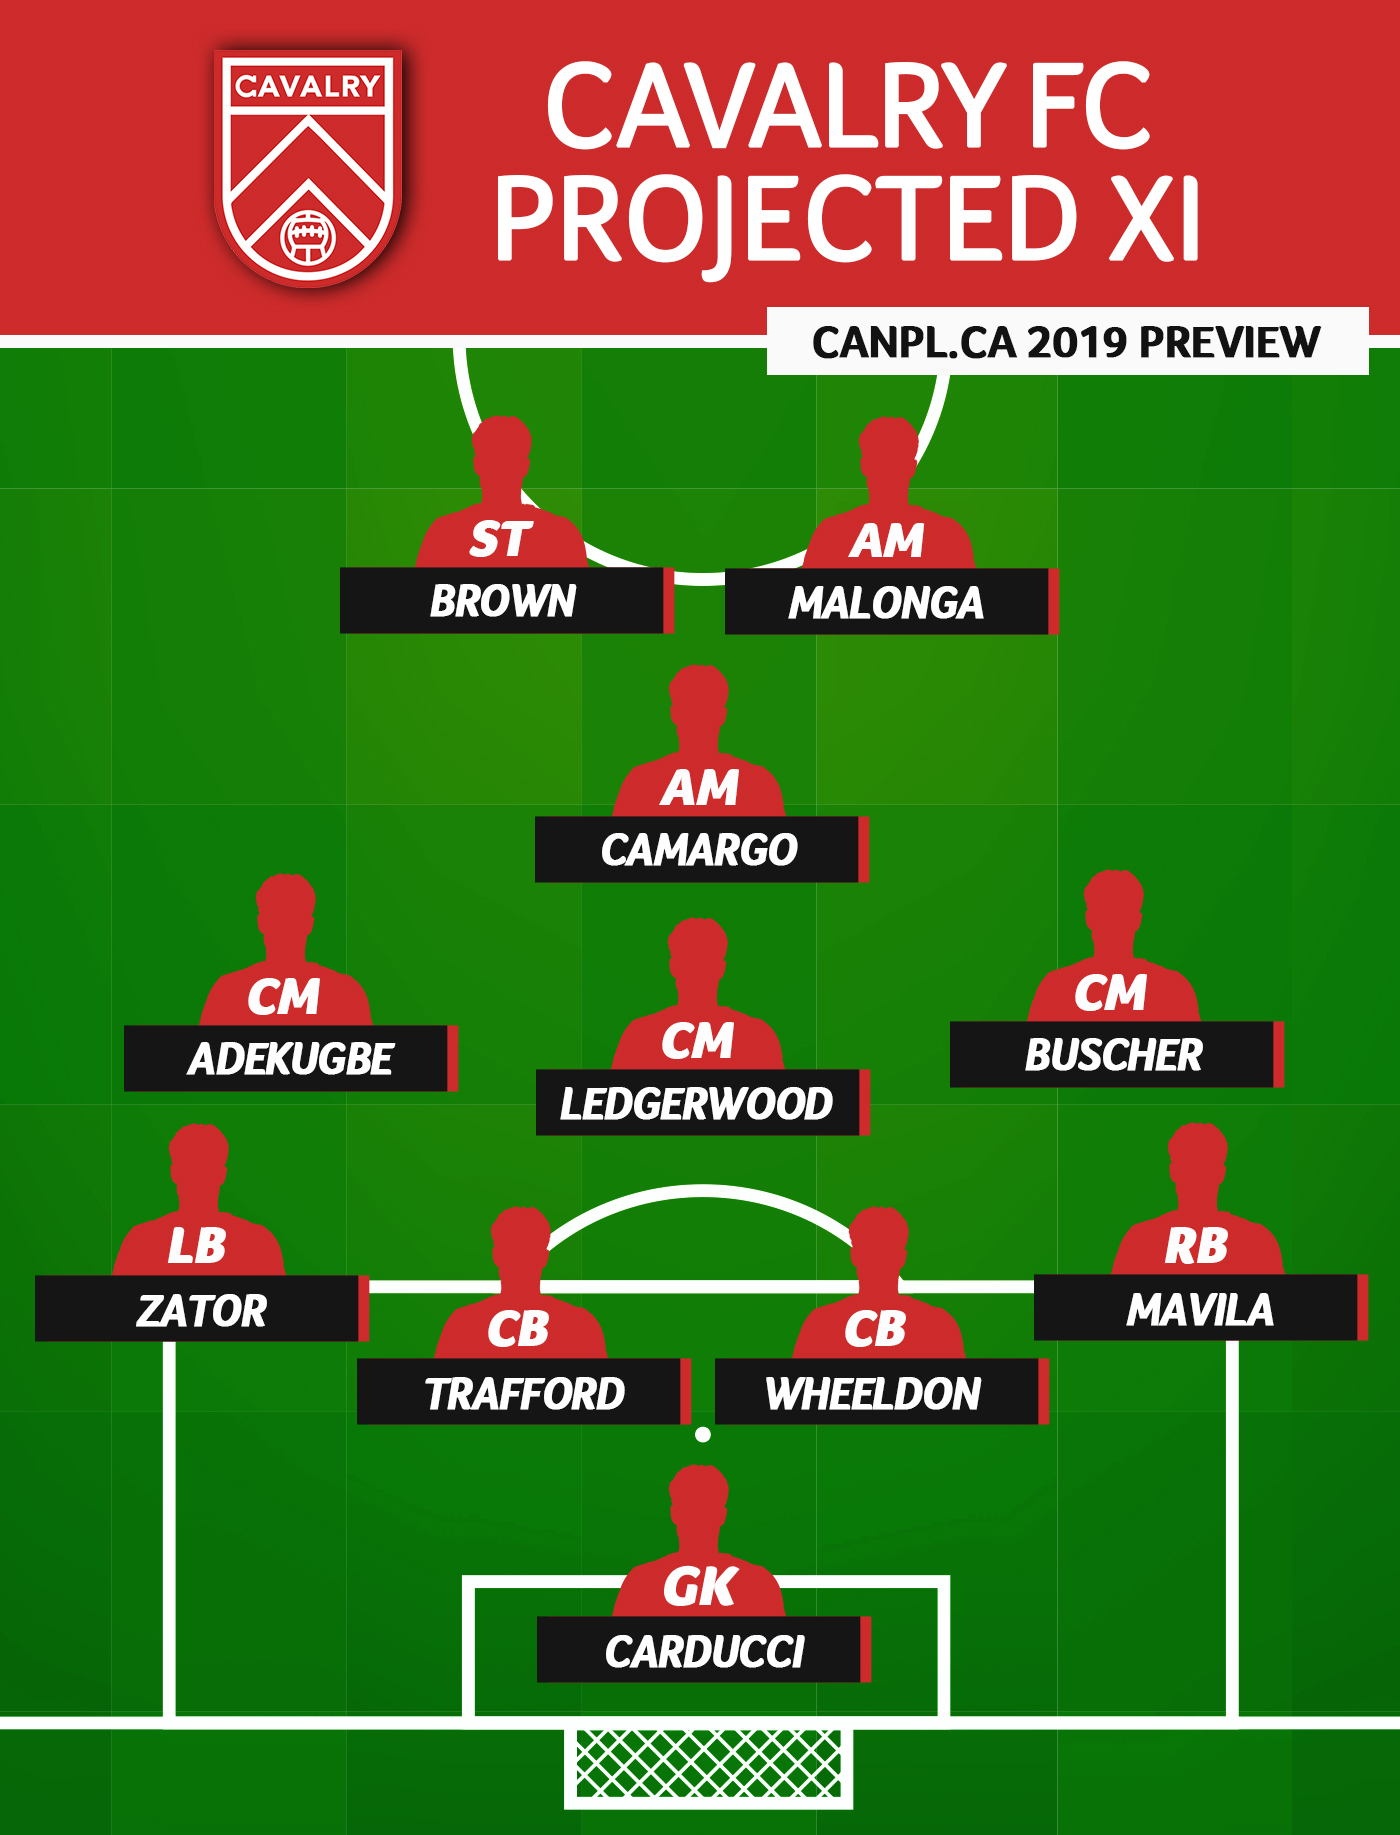 CanPL.ca's projected starting XI for Cavalry FC (April 2019)